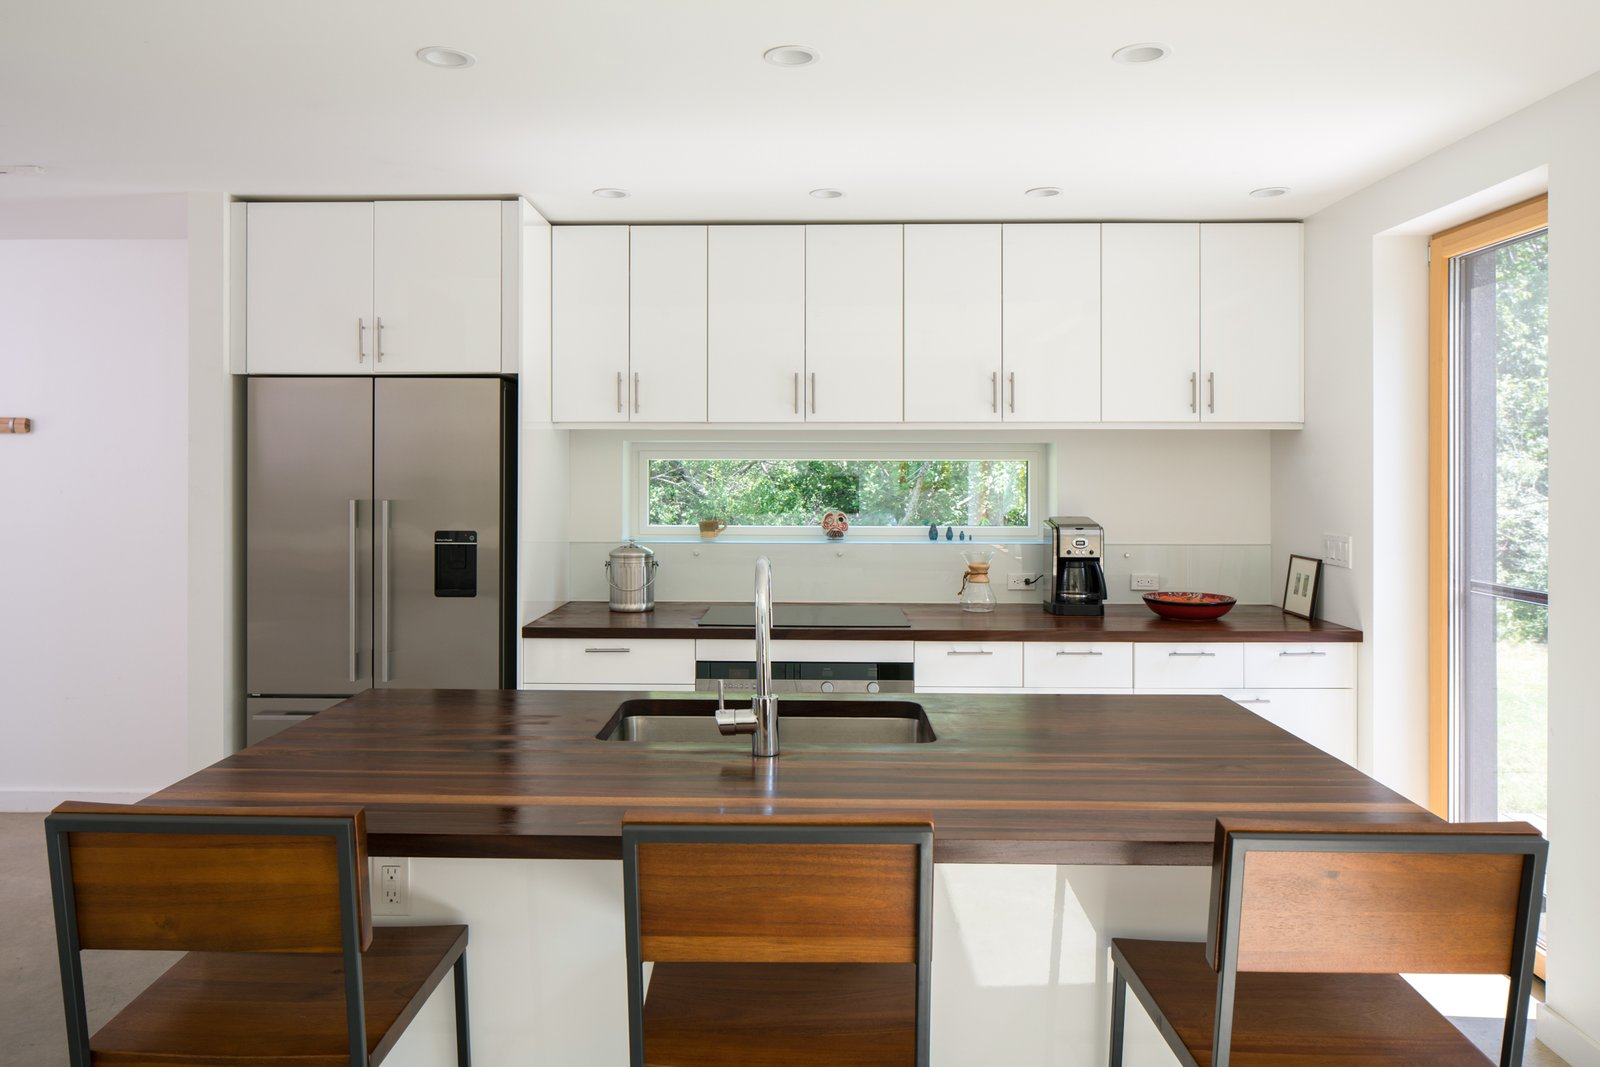 Kitchen, Wood Counter, Refrigerator, Recessed Lighting, Undermount Sink, and White Cabinet  Photo 8 of 10 in GO Home Takes the Passive House Approach to Prefab